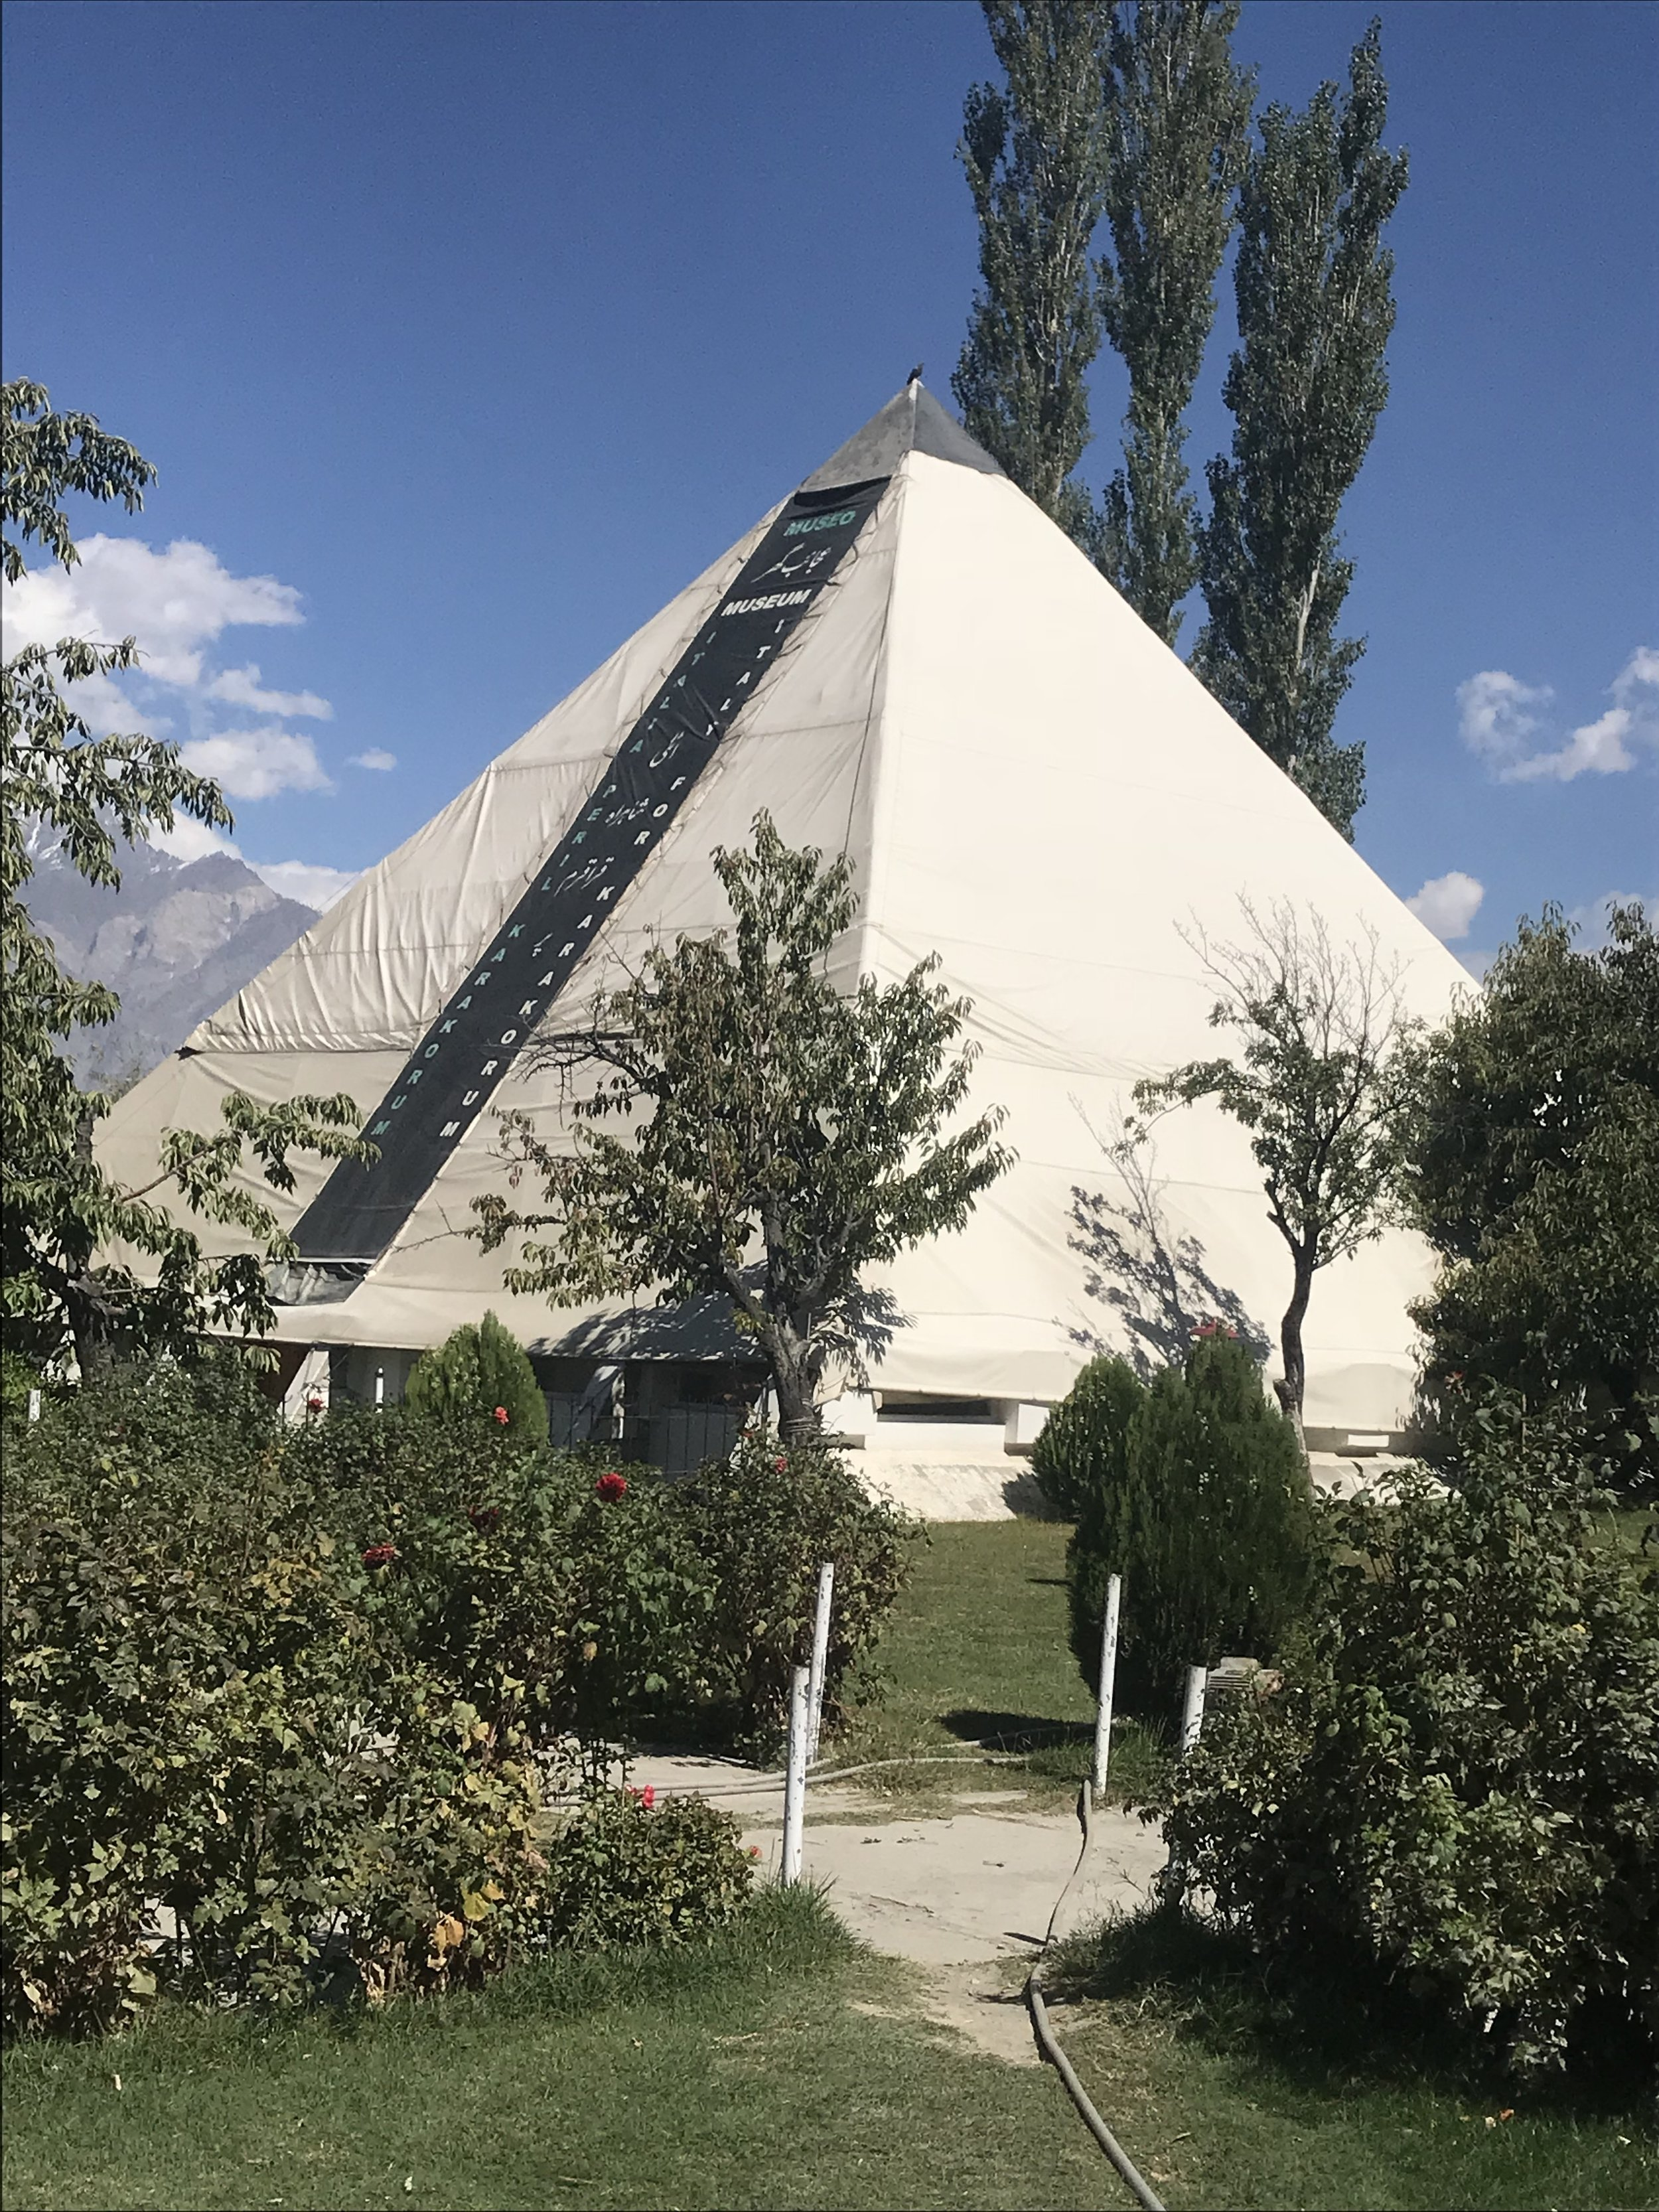 Skardu: K-2 Museum, located in the original basecamp tent for the Italian climbers